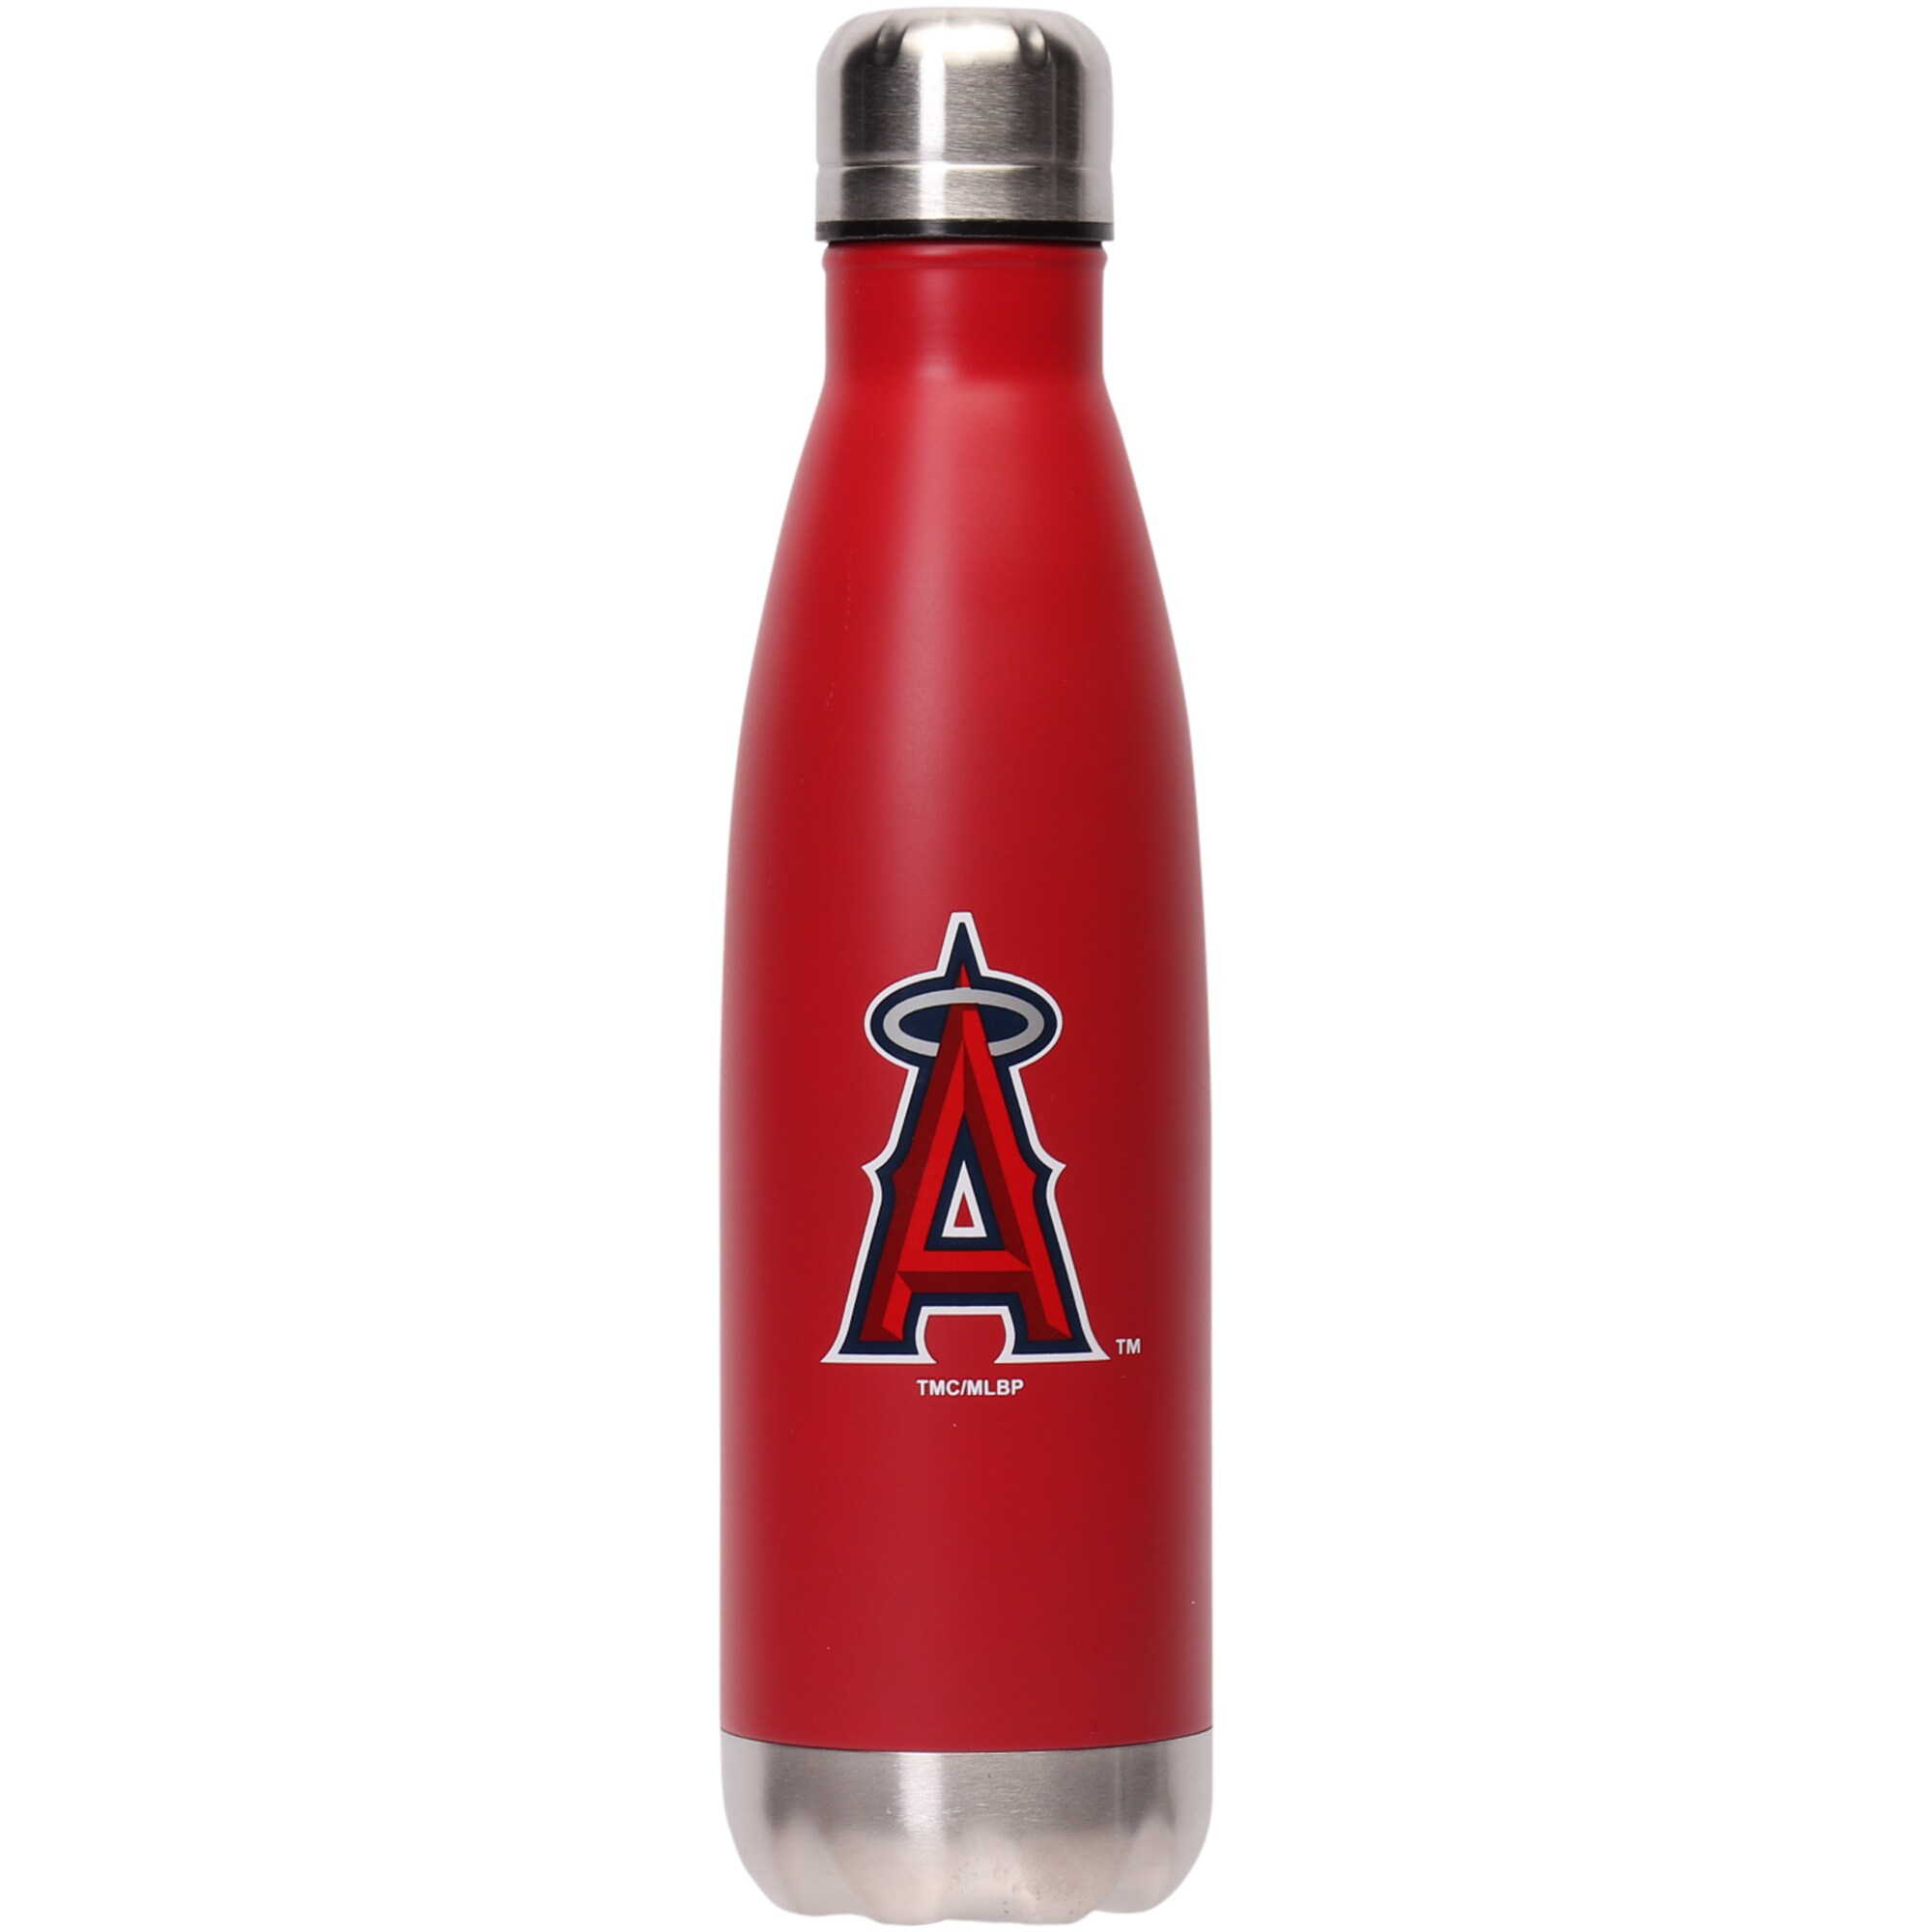 Los Angeles Angels 17oz. Team Color Stainless Steel Water Bottle